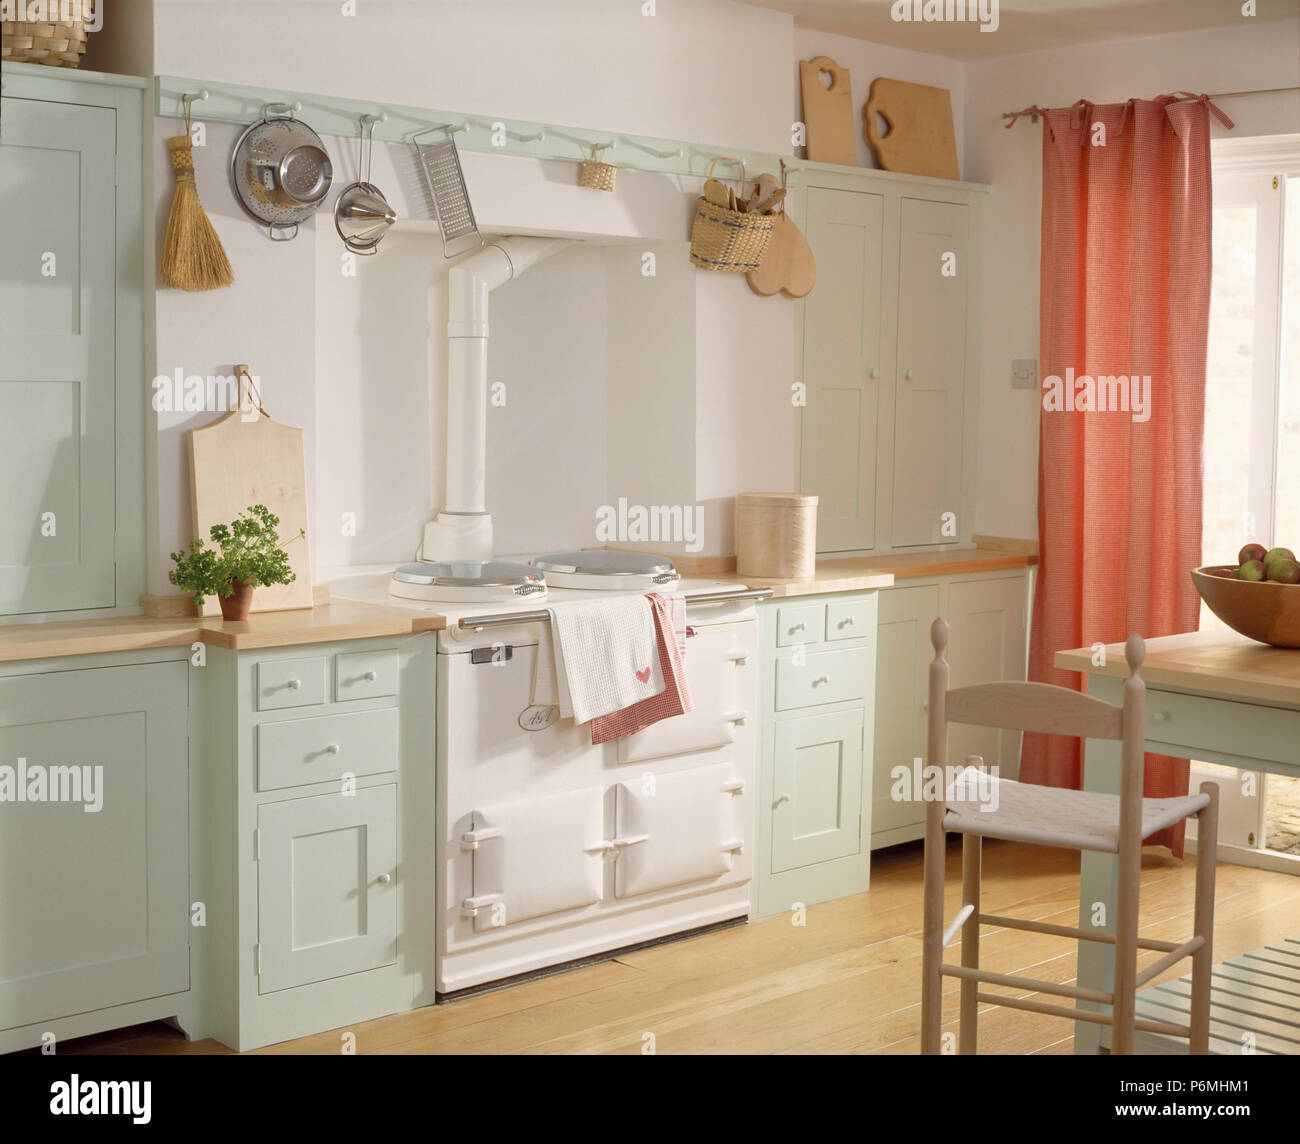 White Aga In Shaker Style Kitchen With Pale Blue Units And Peach Pink  Curtains